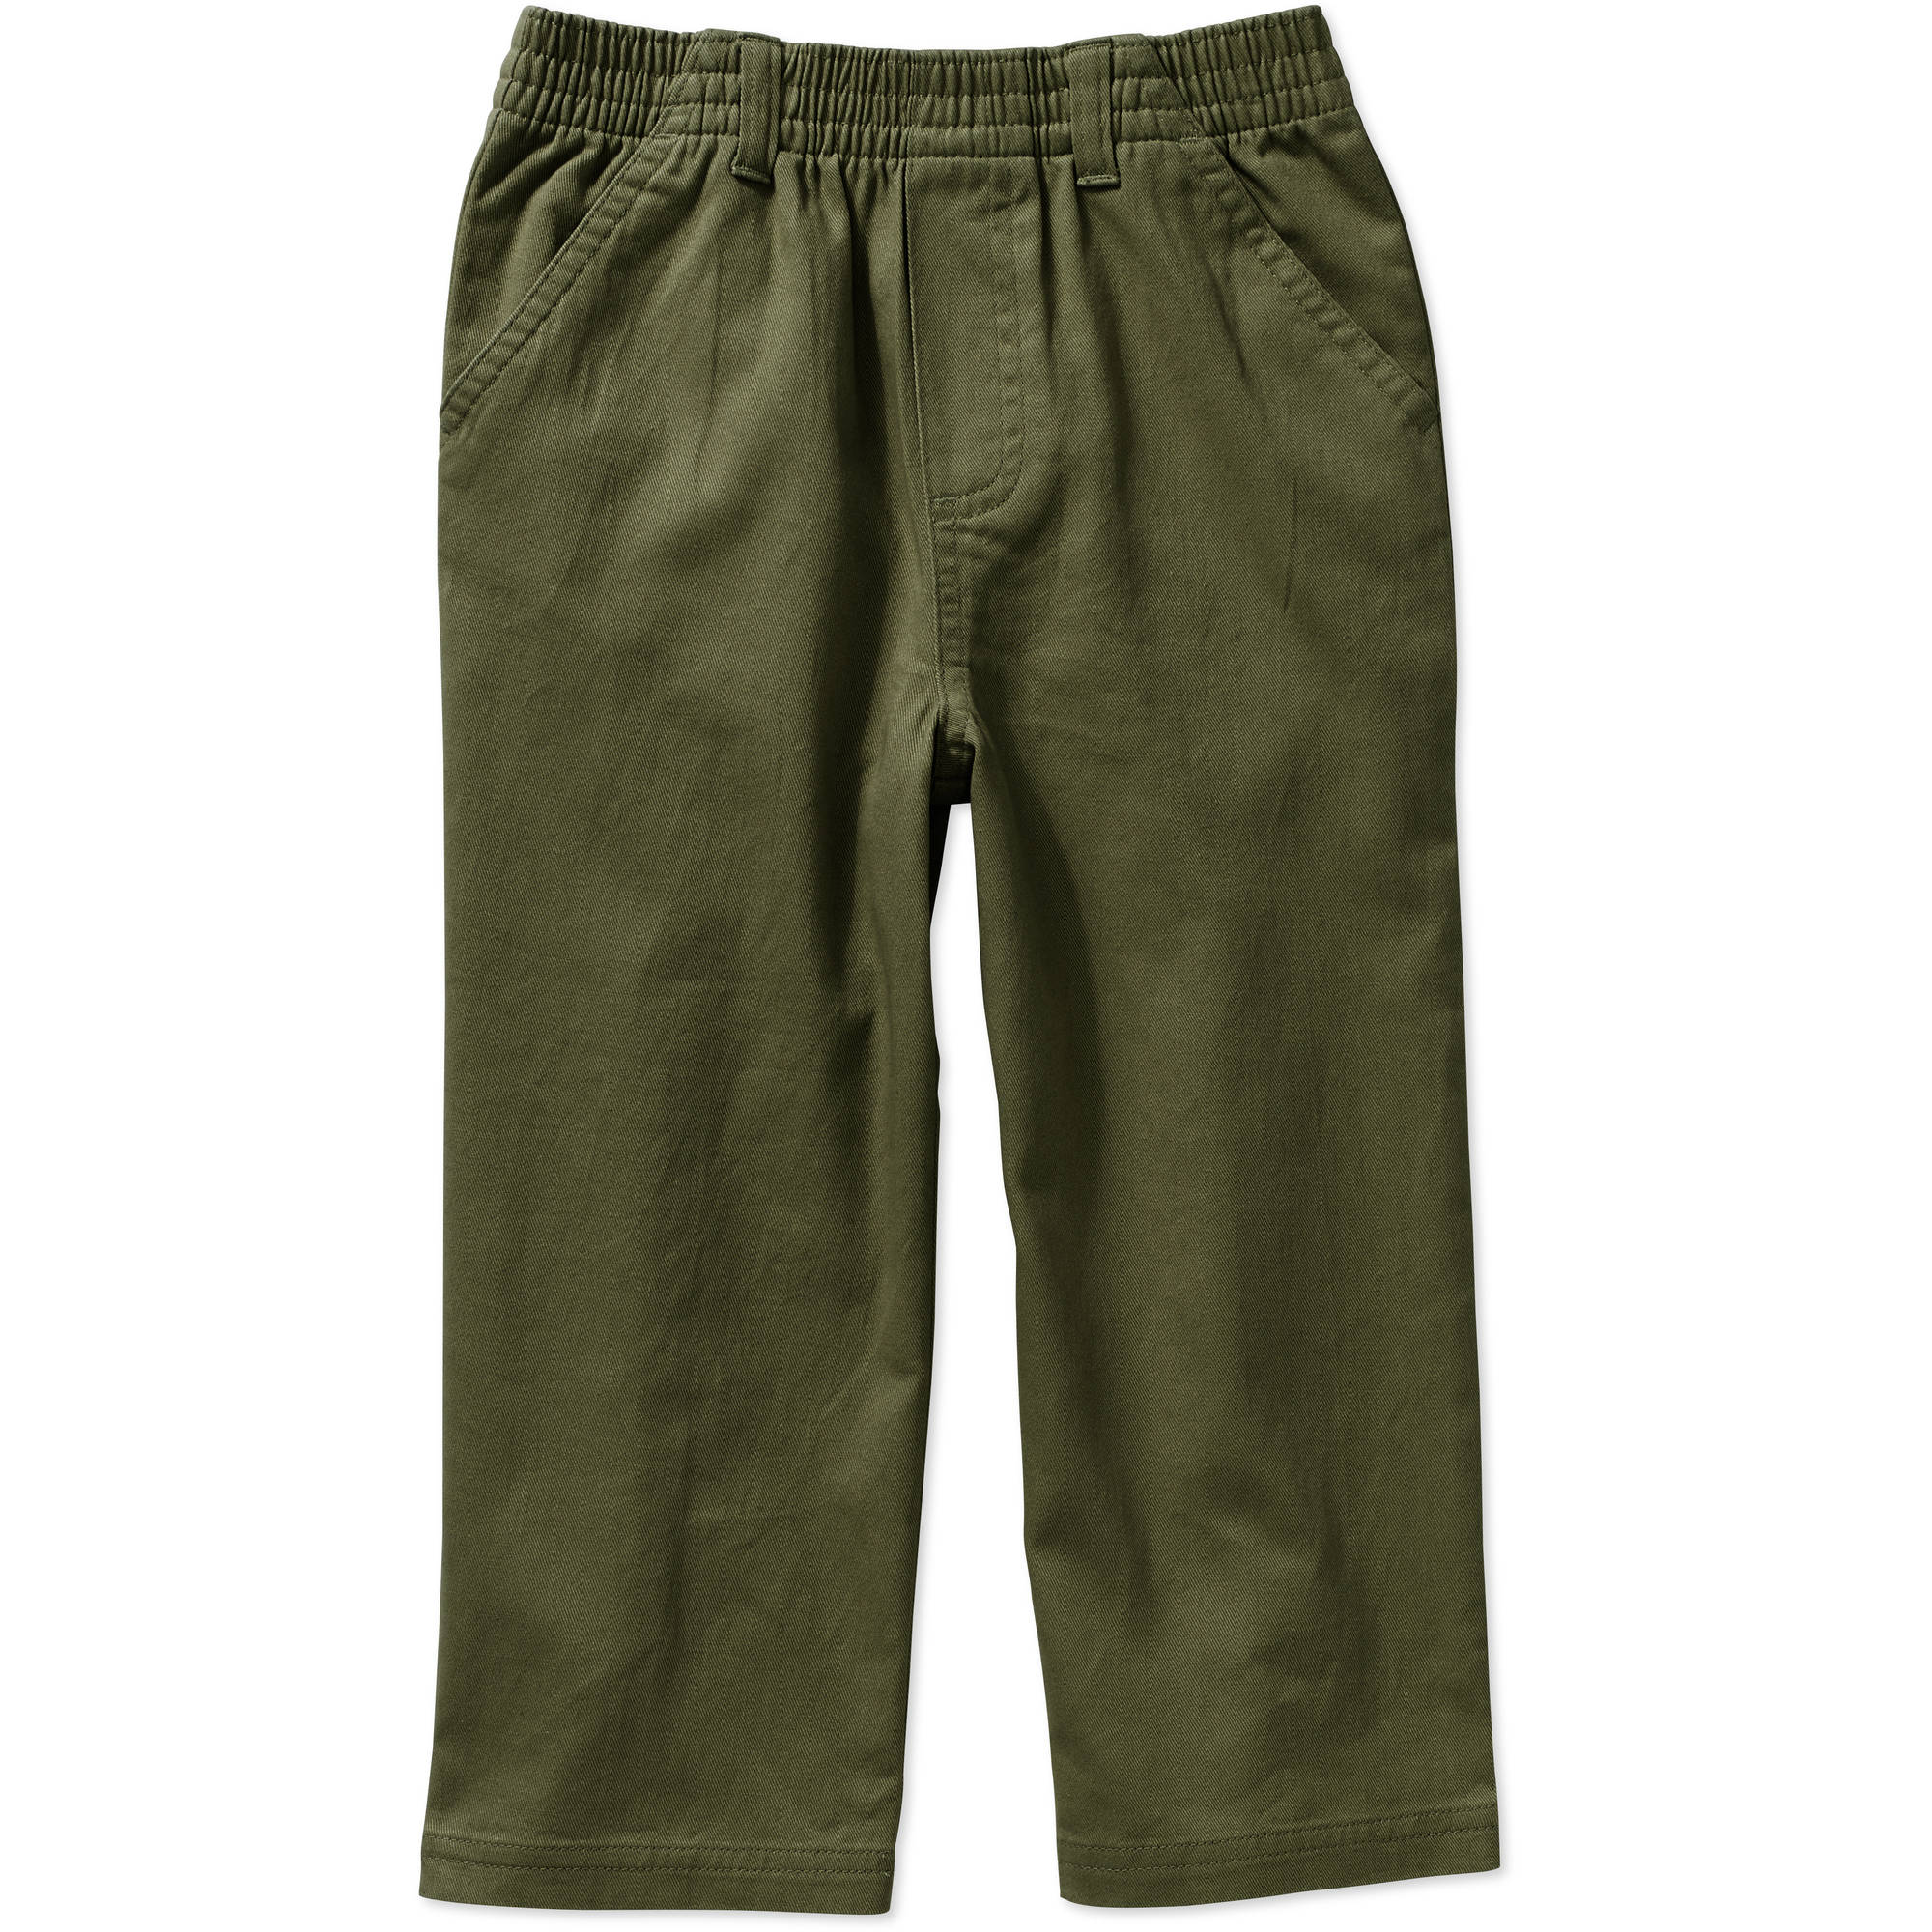 Garanimals Baby Toddler Boys' Solid Twill Pants